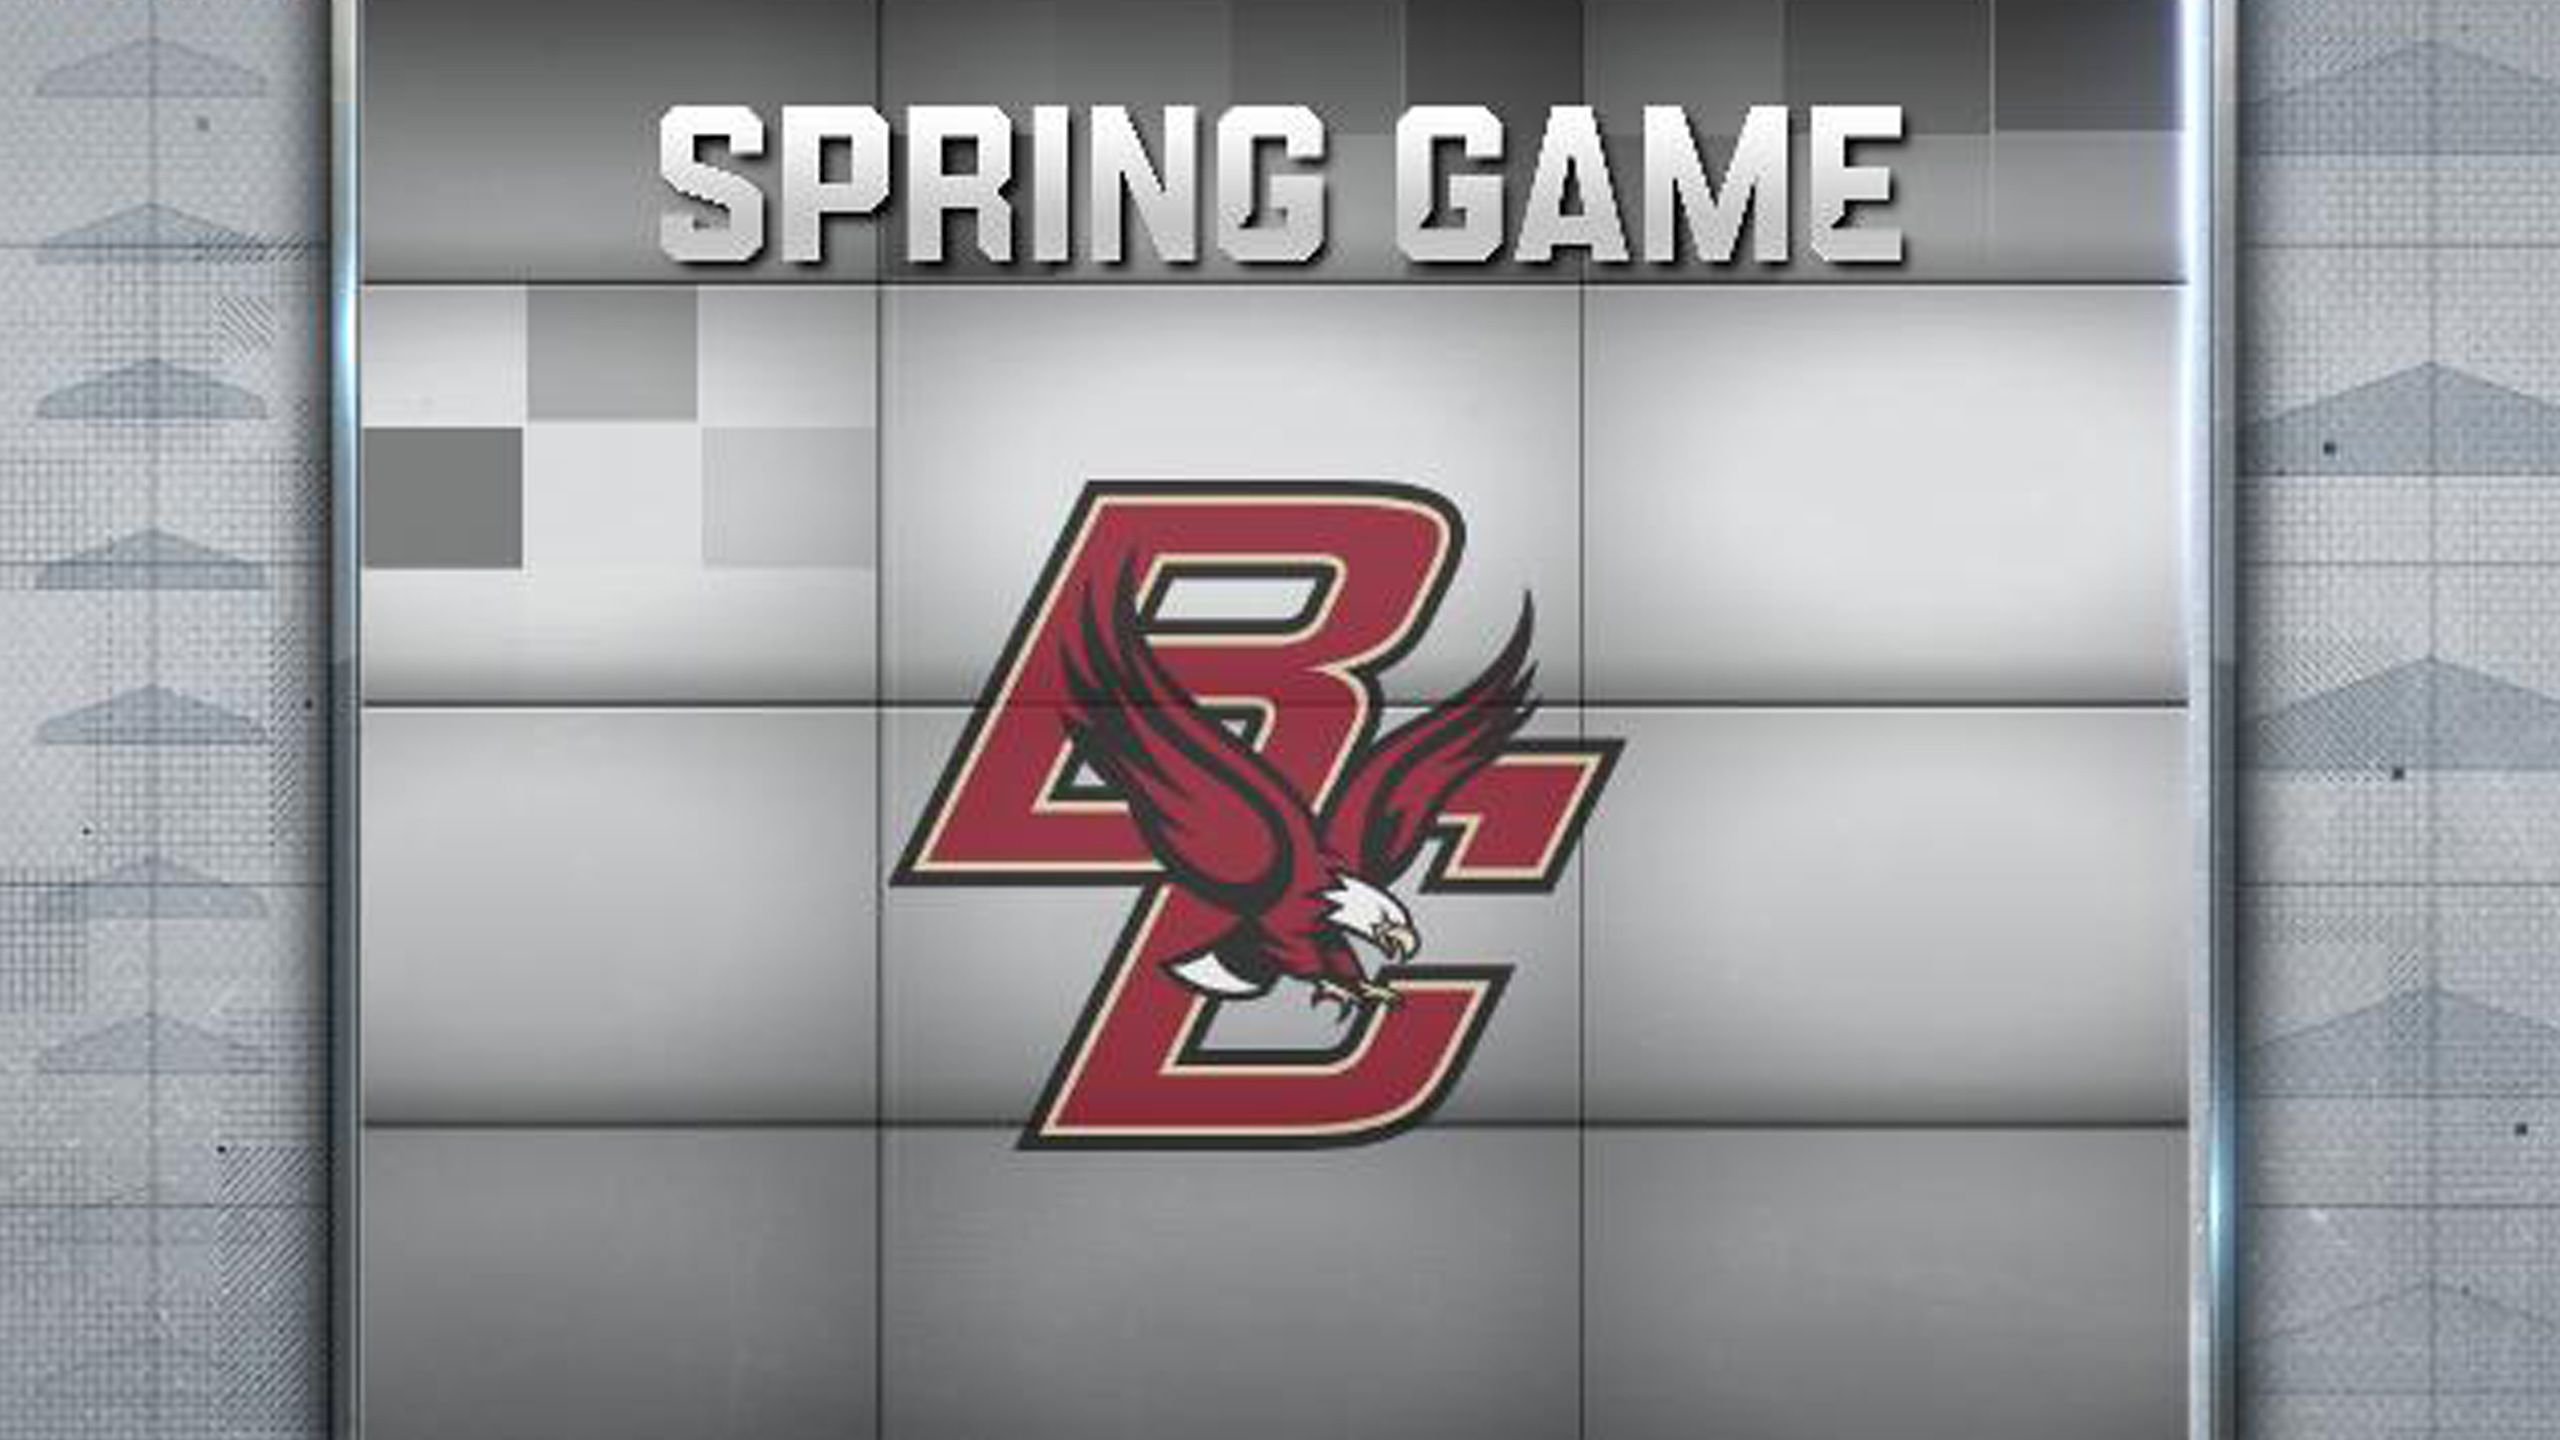 Boston College Spring Game